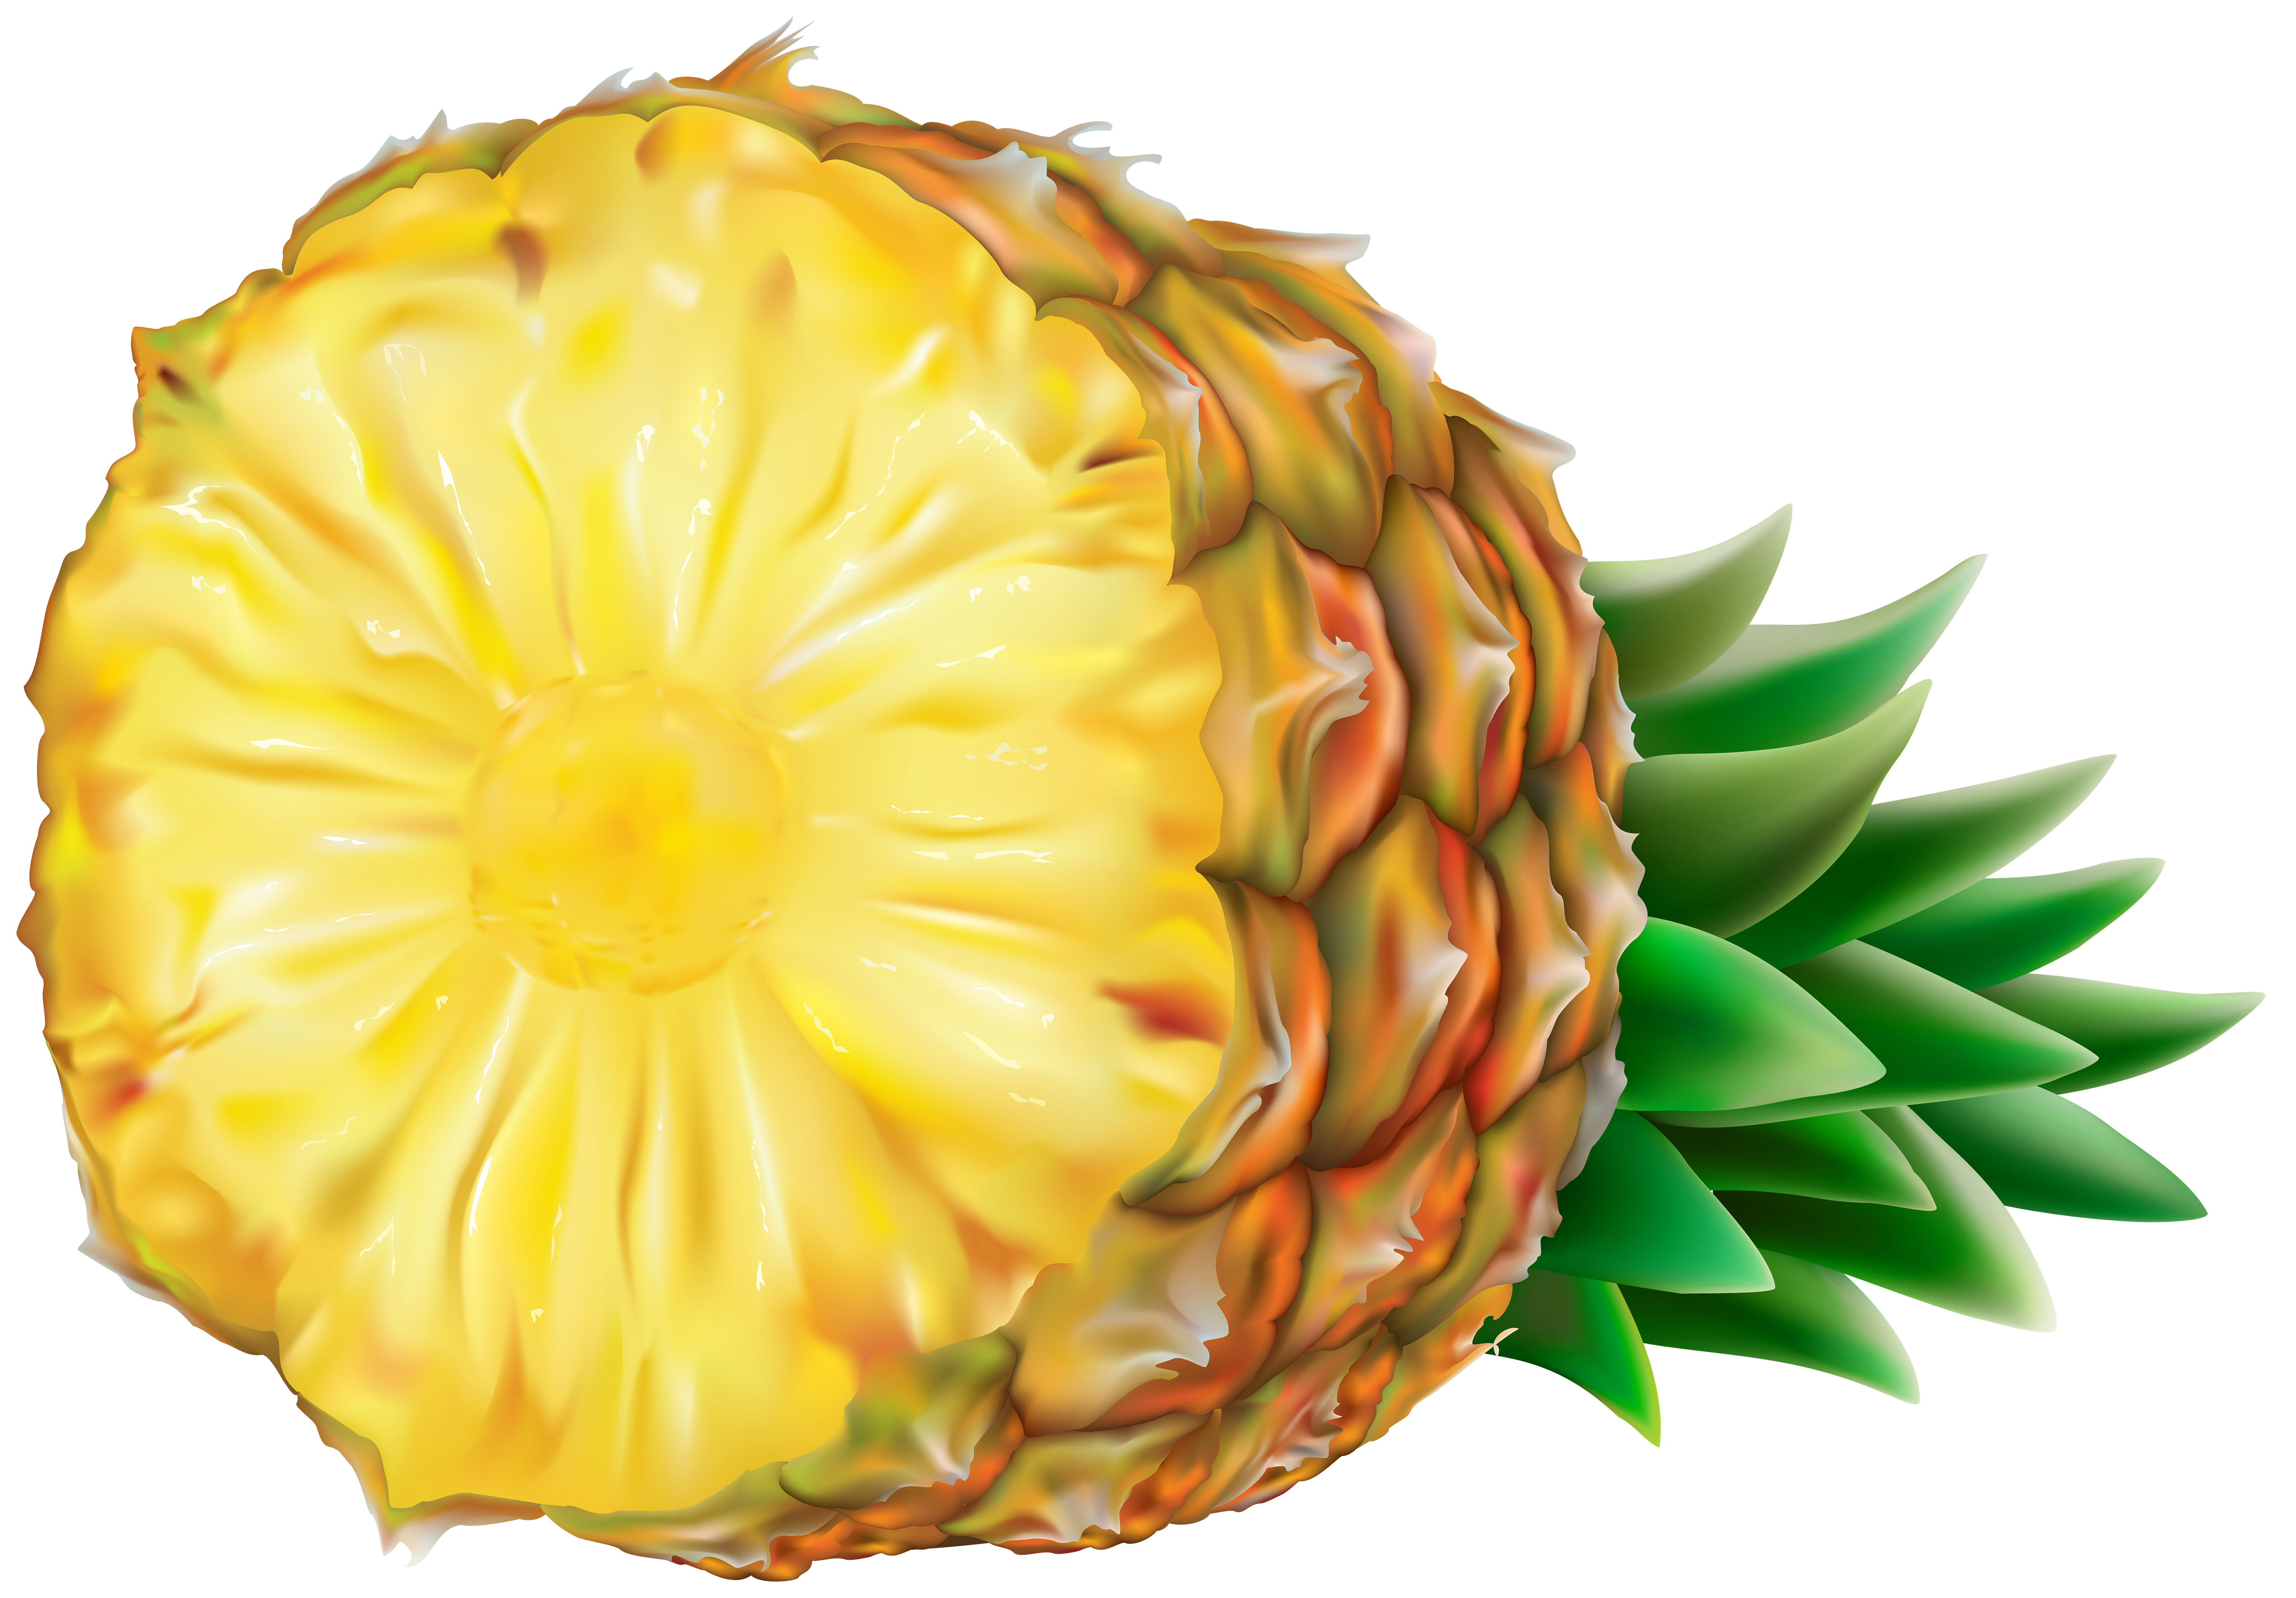 Cool Pineapple Png - View full size ?